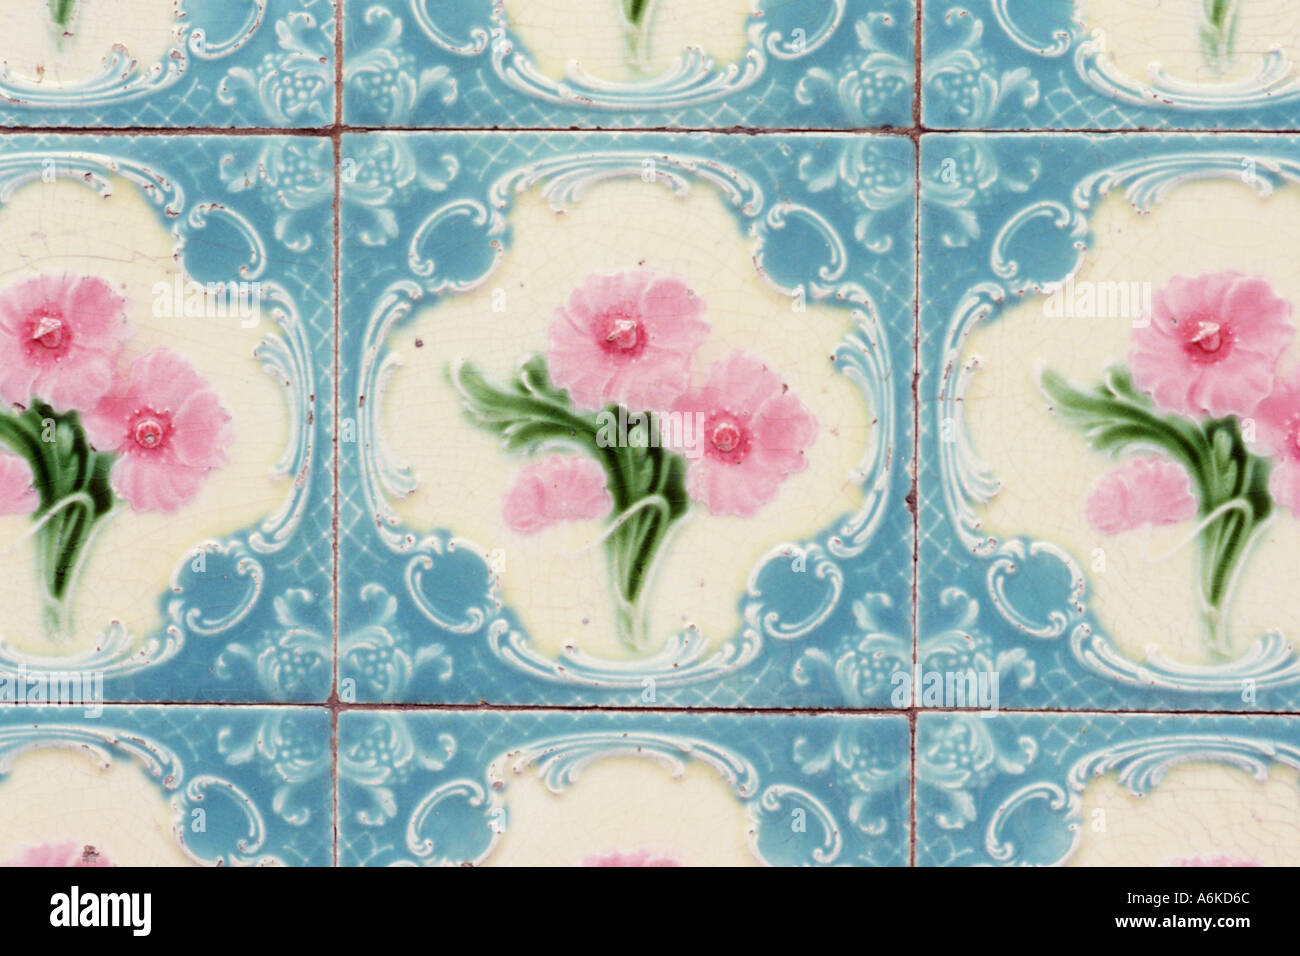 Asia Malaysia Kuala Lumpur Closeup of decorative tiles used on facades of traditional houses Flower motif - Stock Image